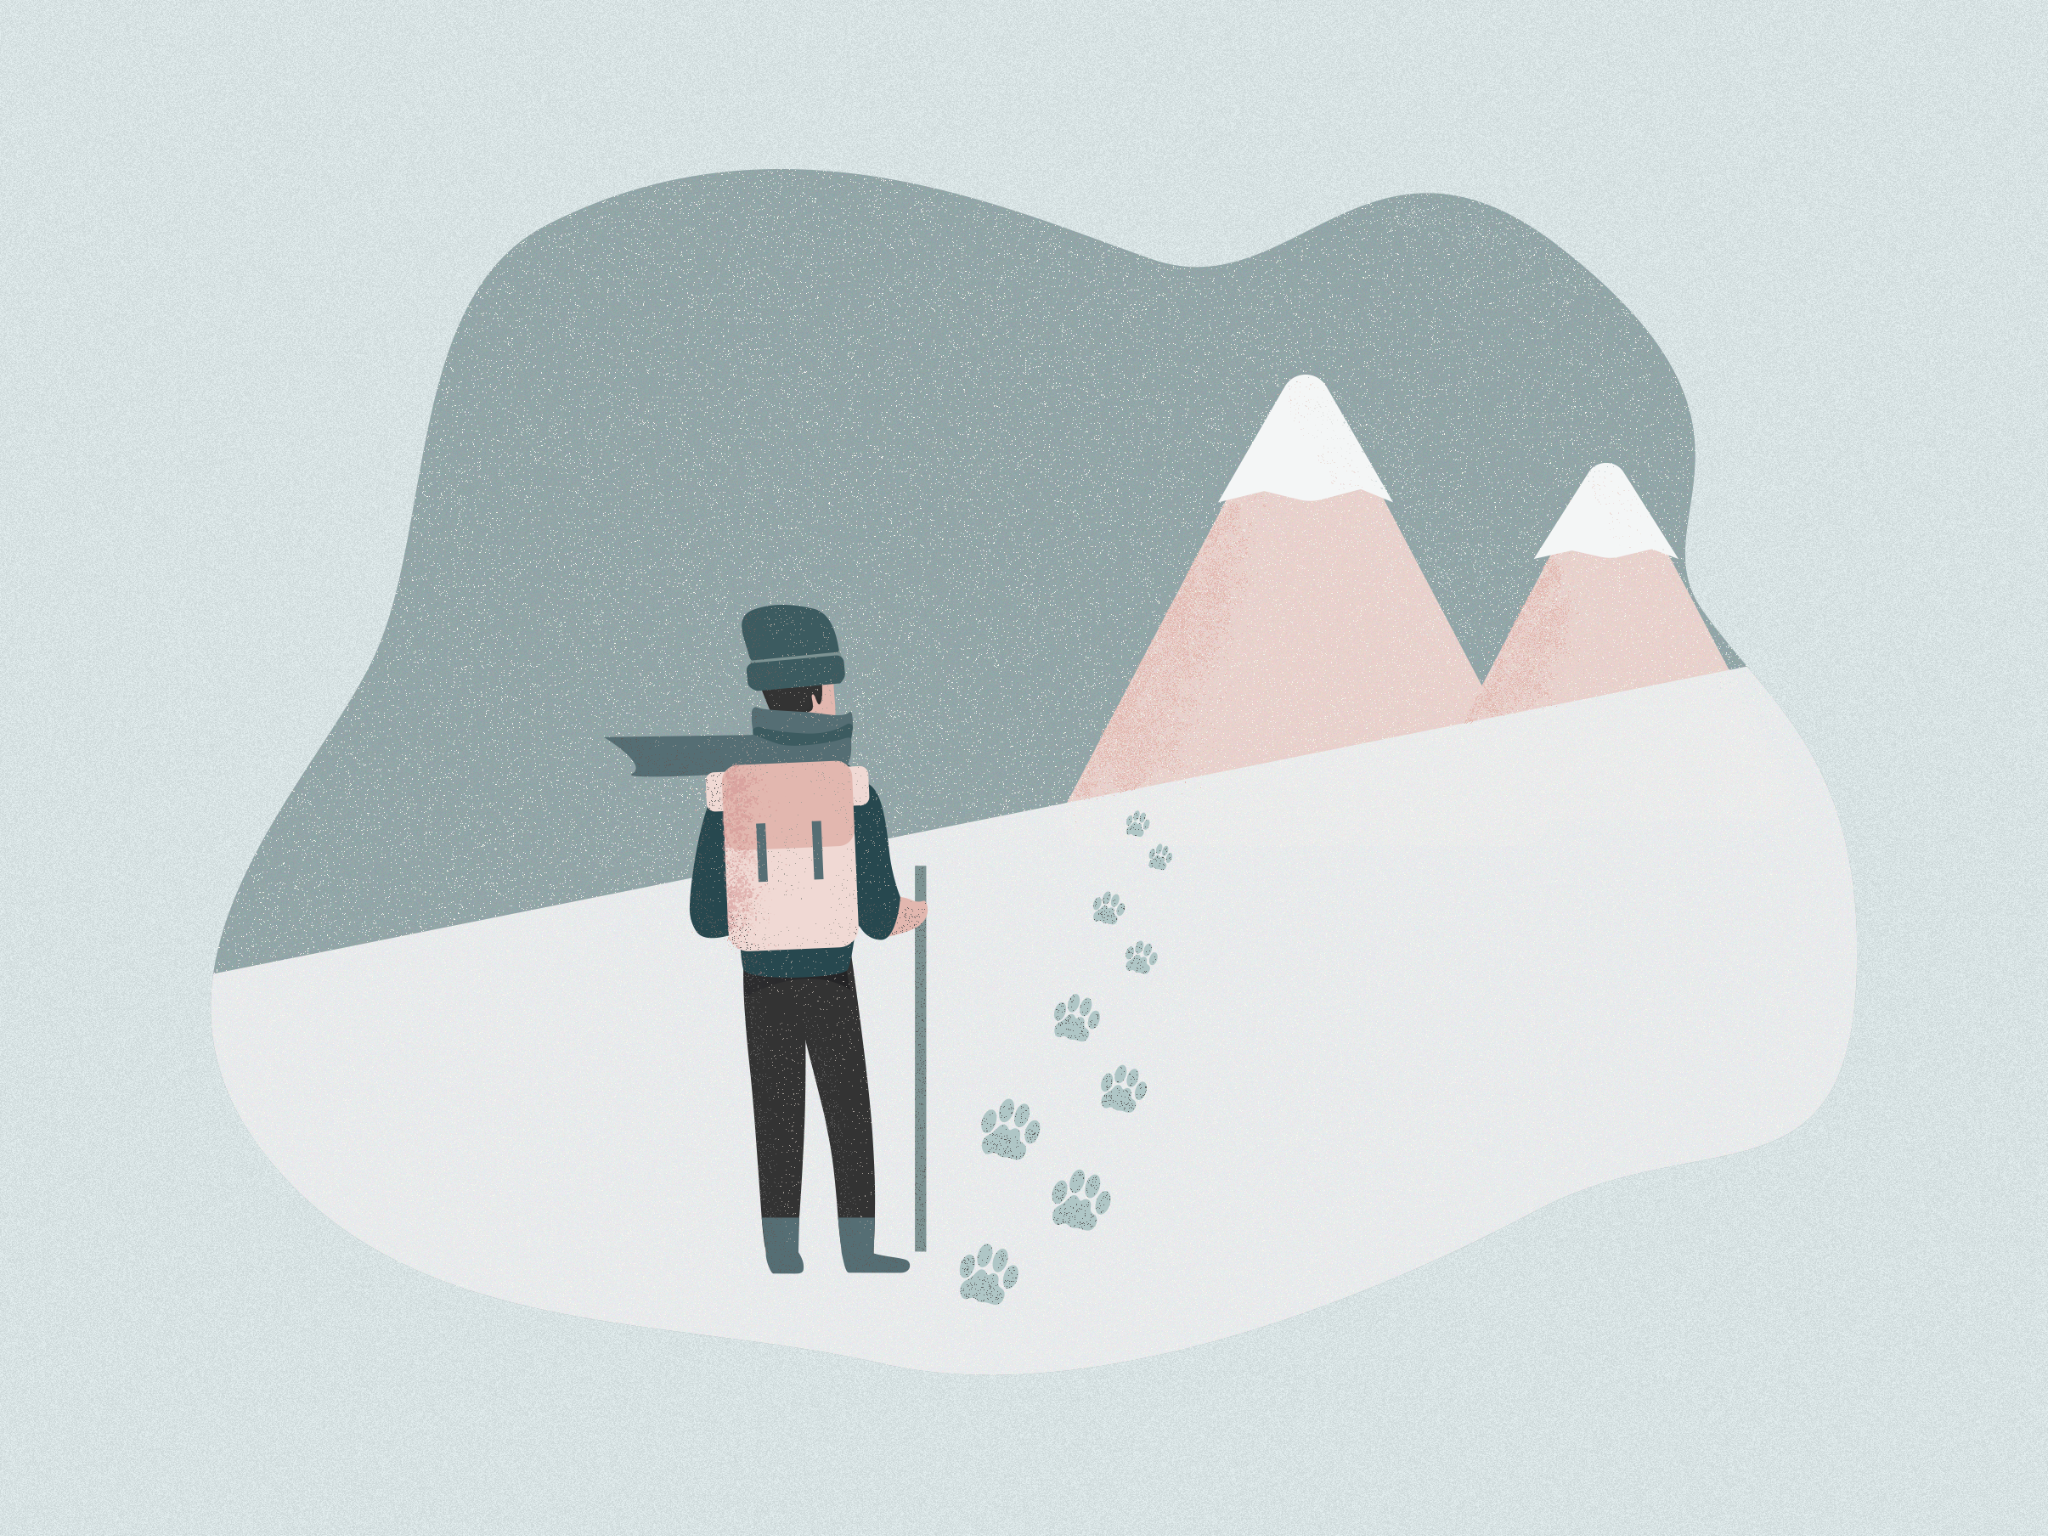 Illustration of guy hiking in mountains